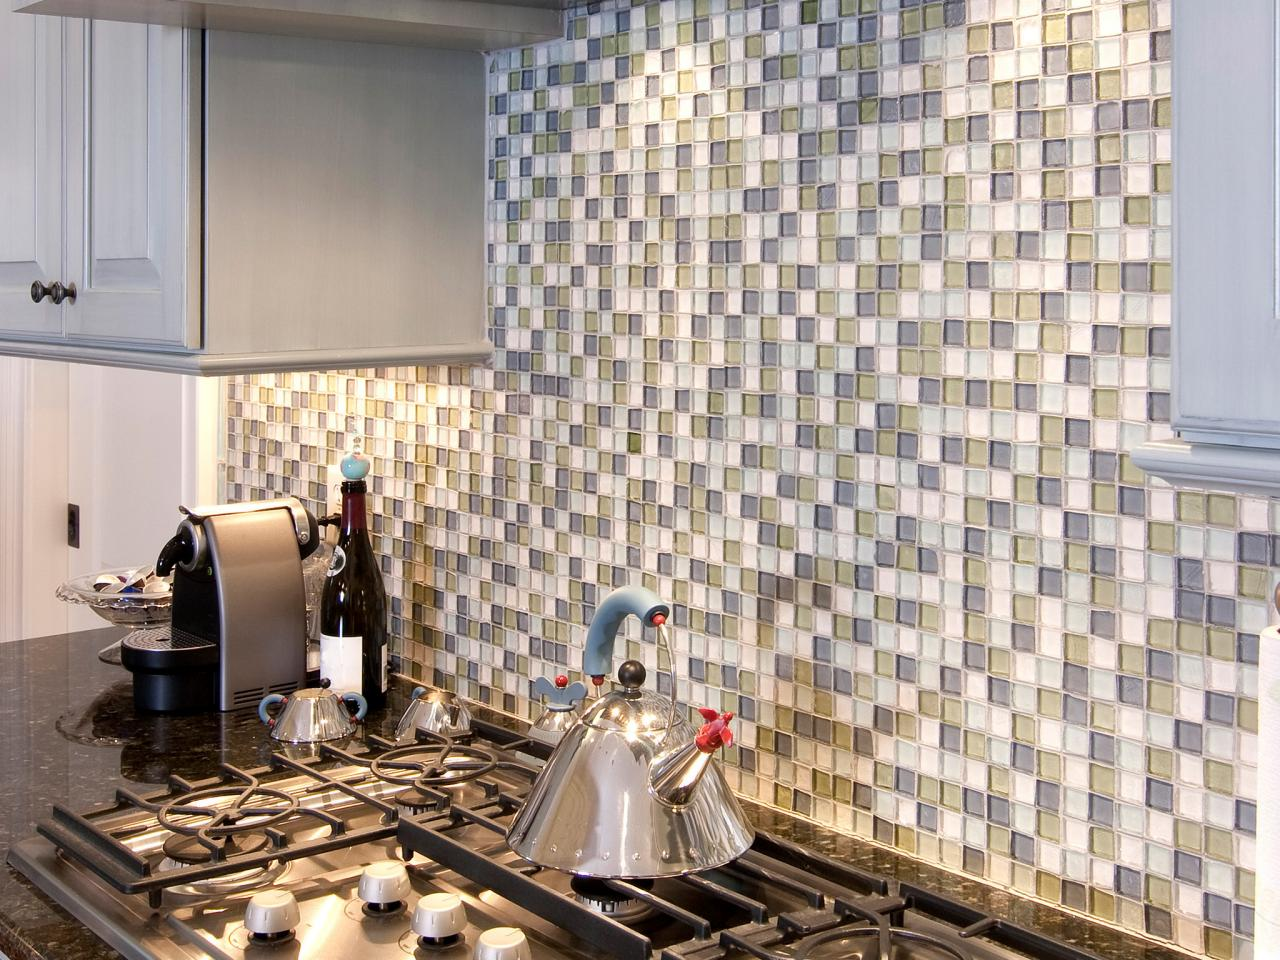 Genial Mosaic Backsplashes